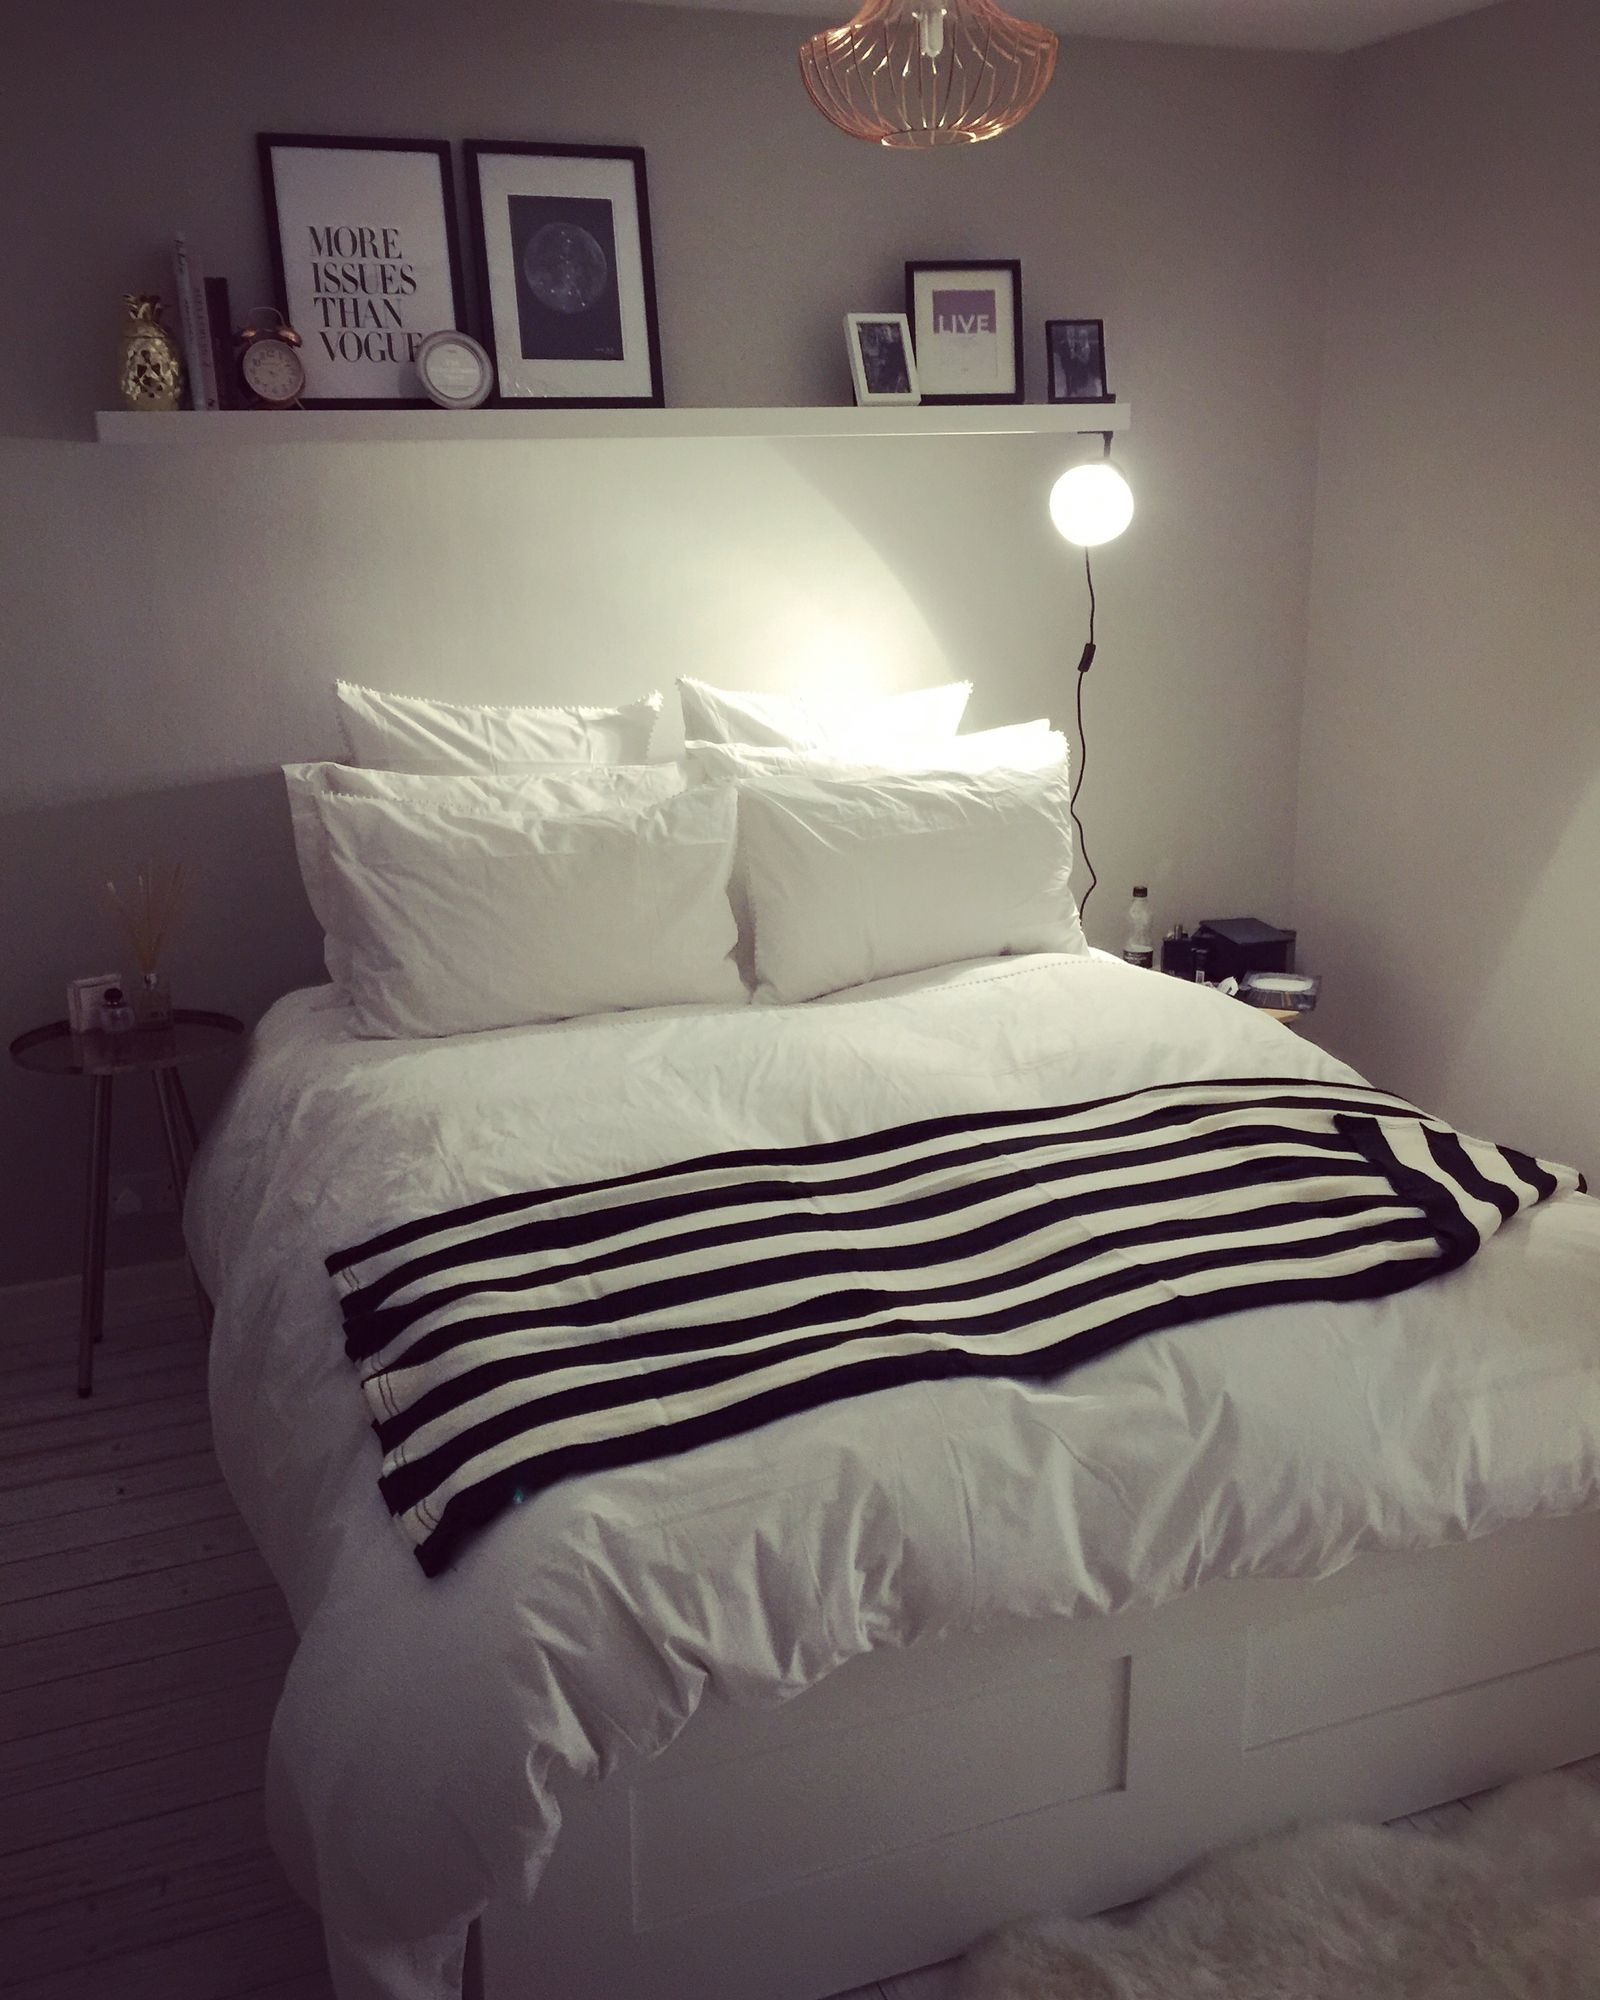 Our Bedroom Black White And Grey With Floating Shelf With